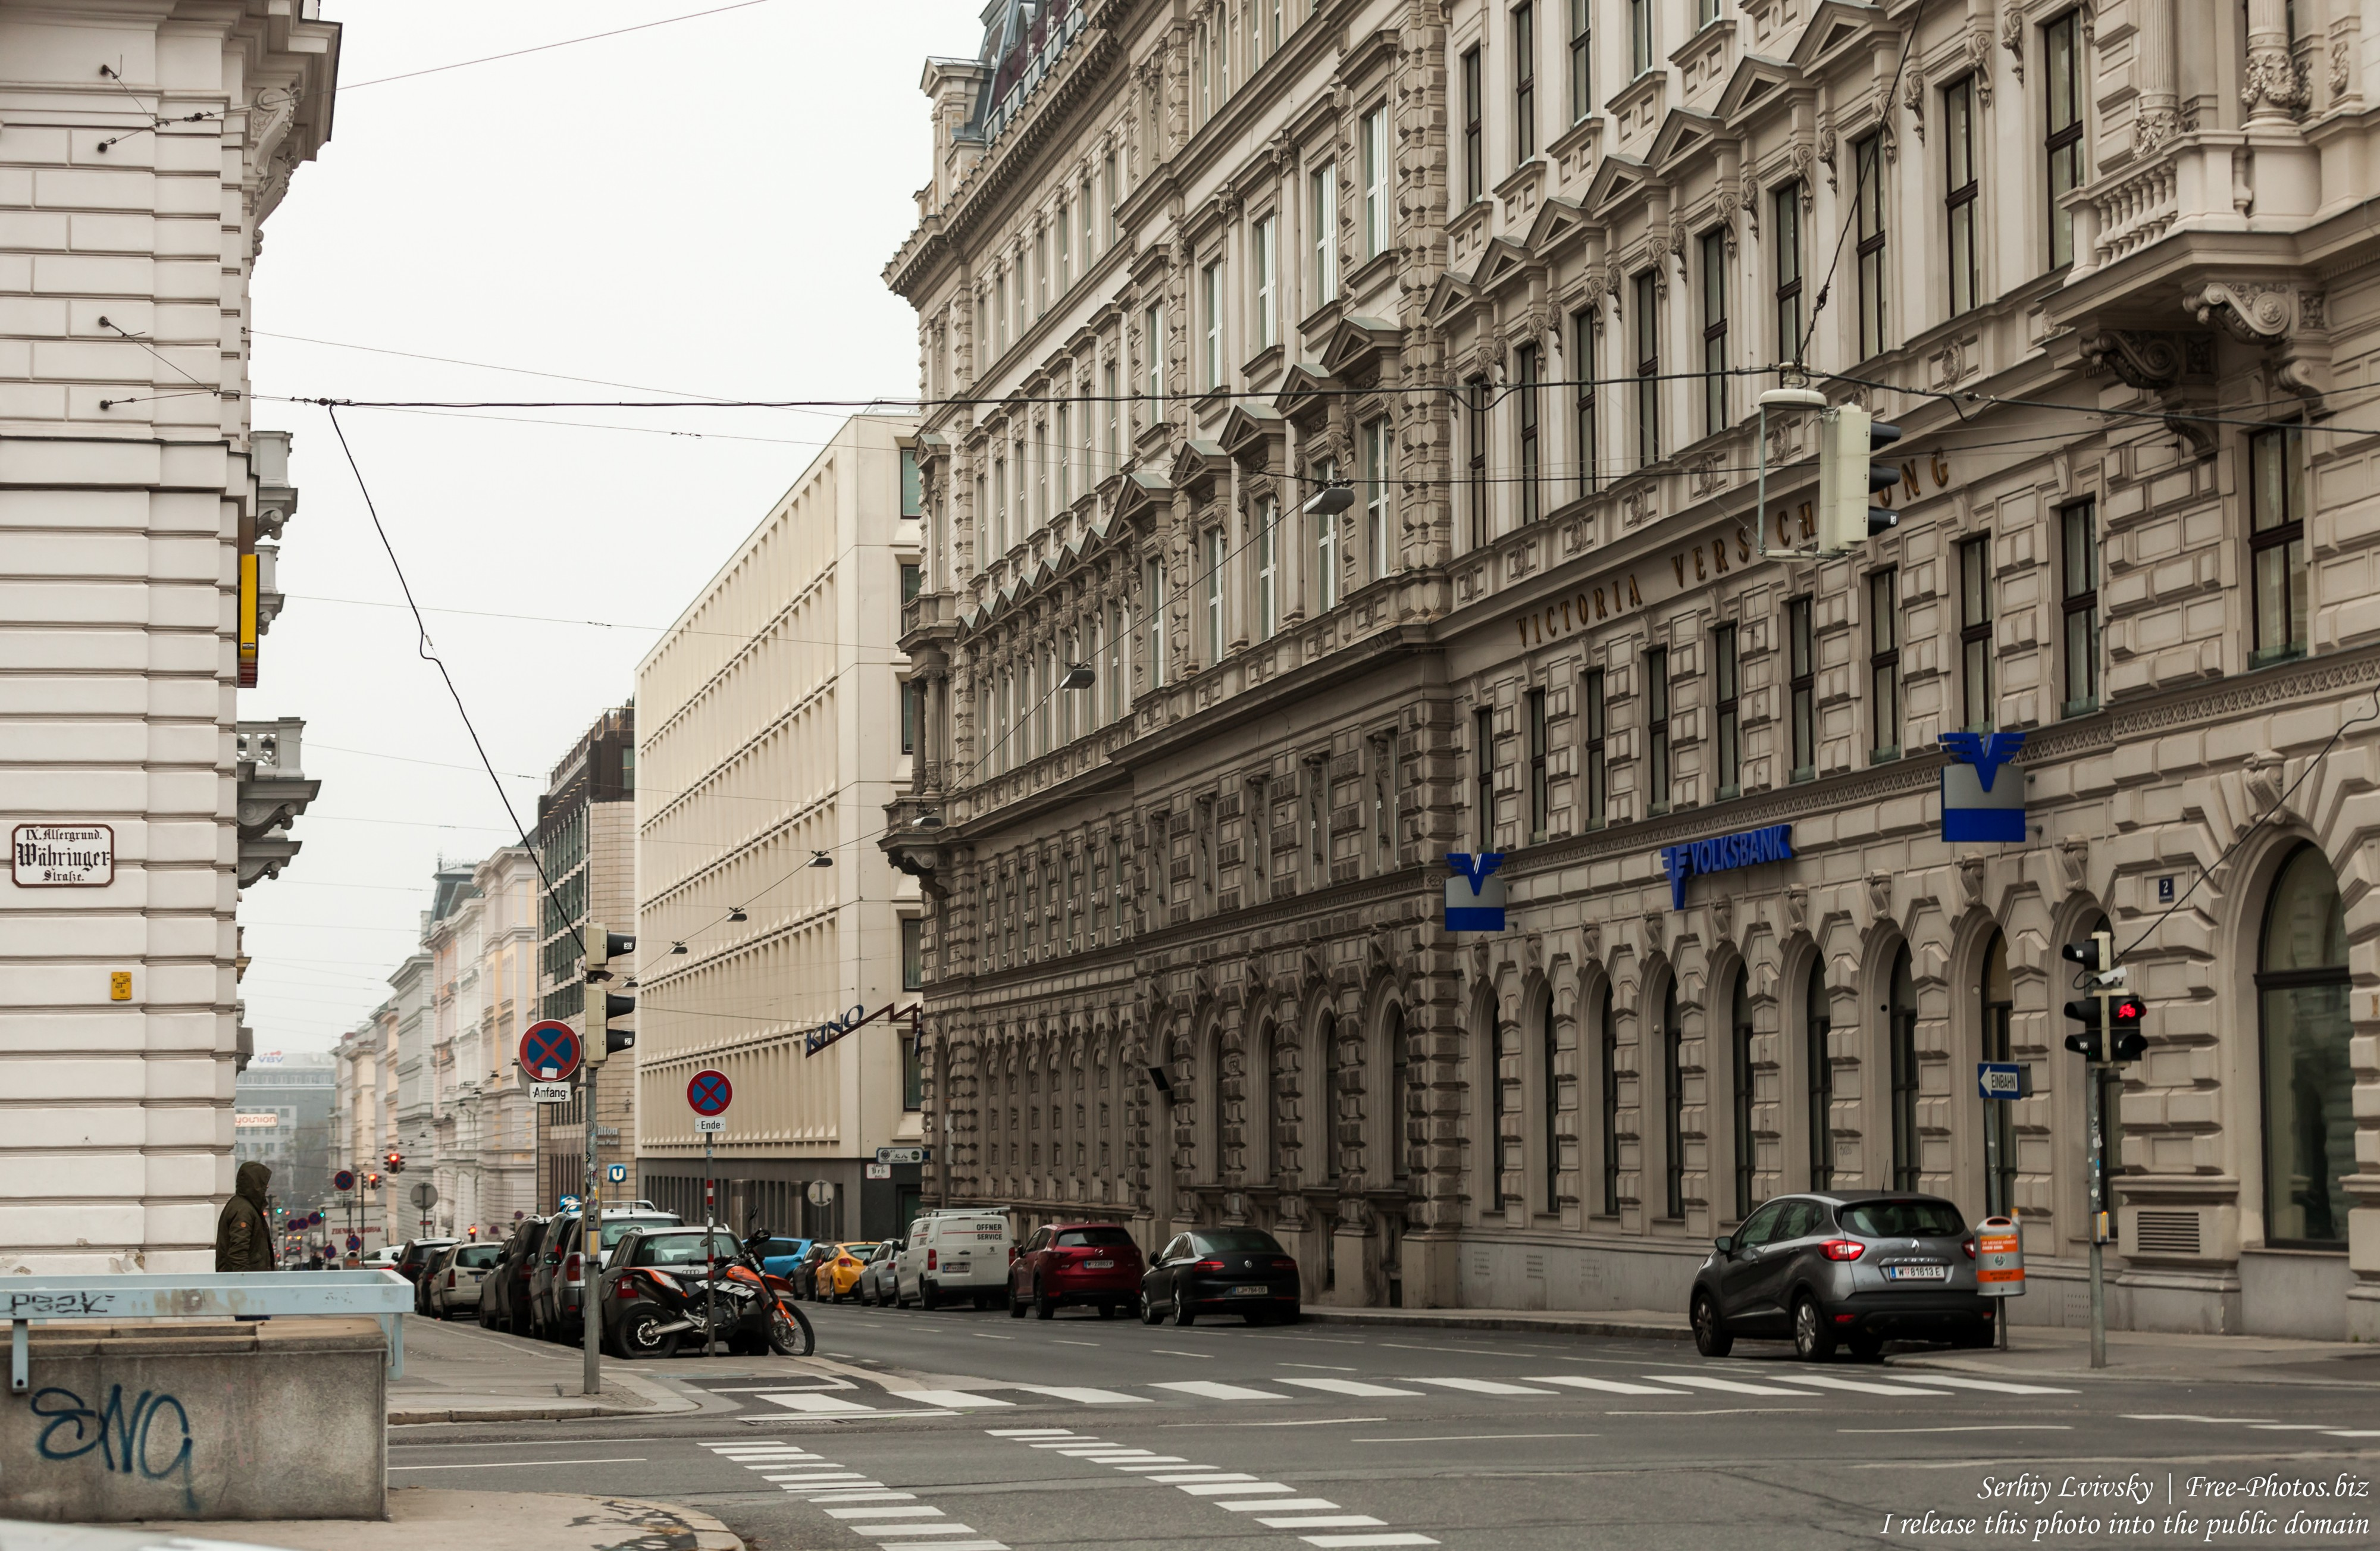 Vienna, Austria photographed in December 2017 by Serhiy Lvivsky, picture 1